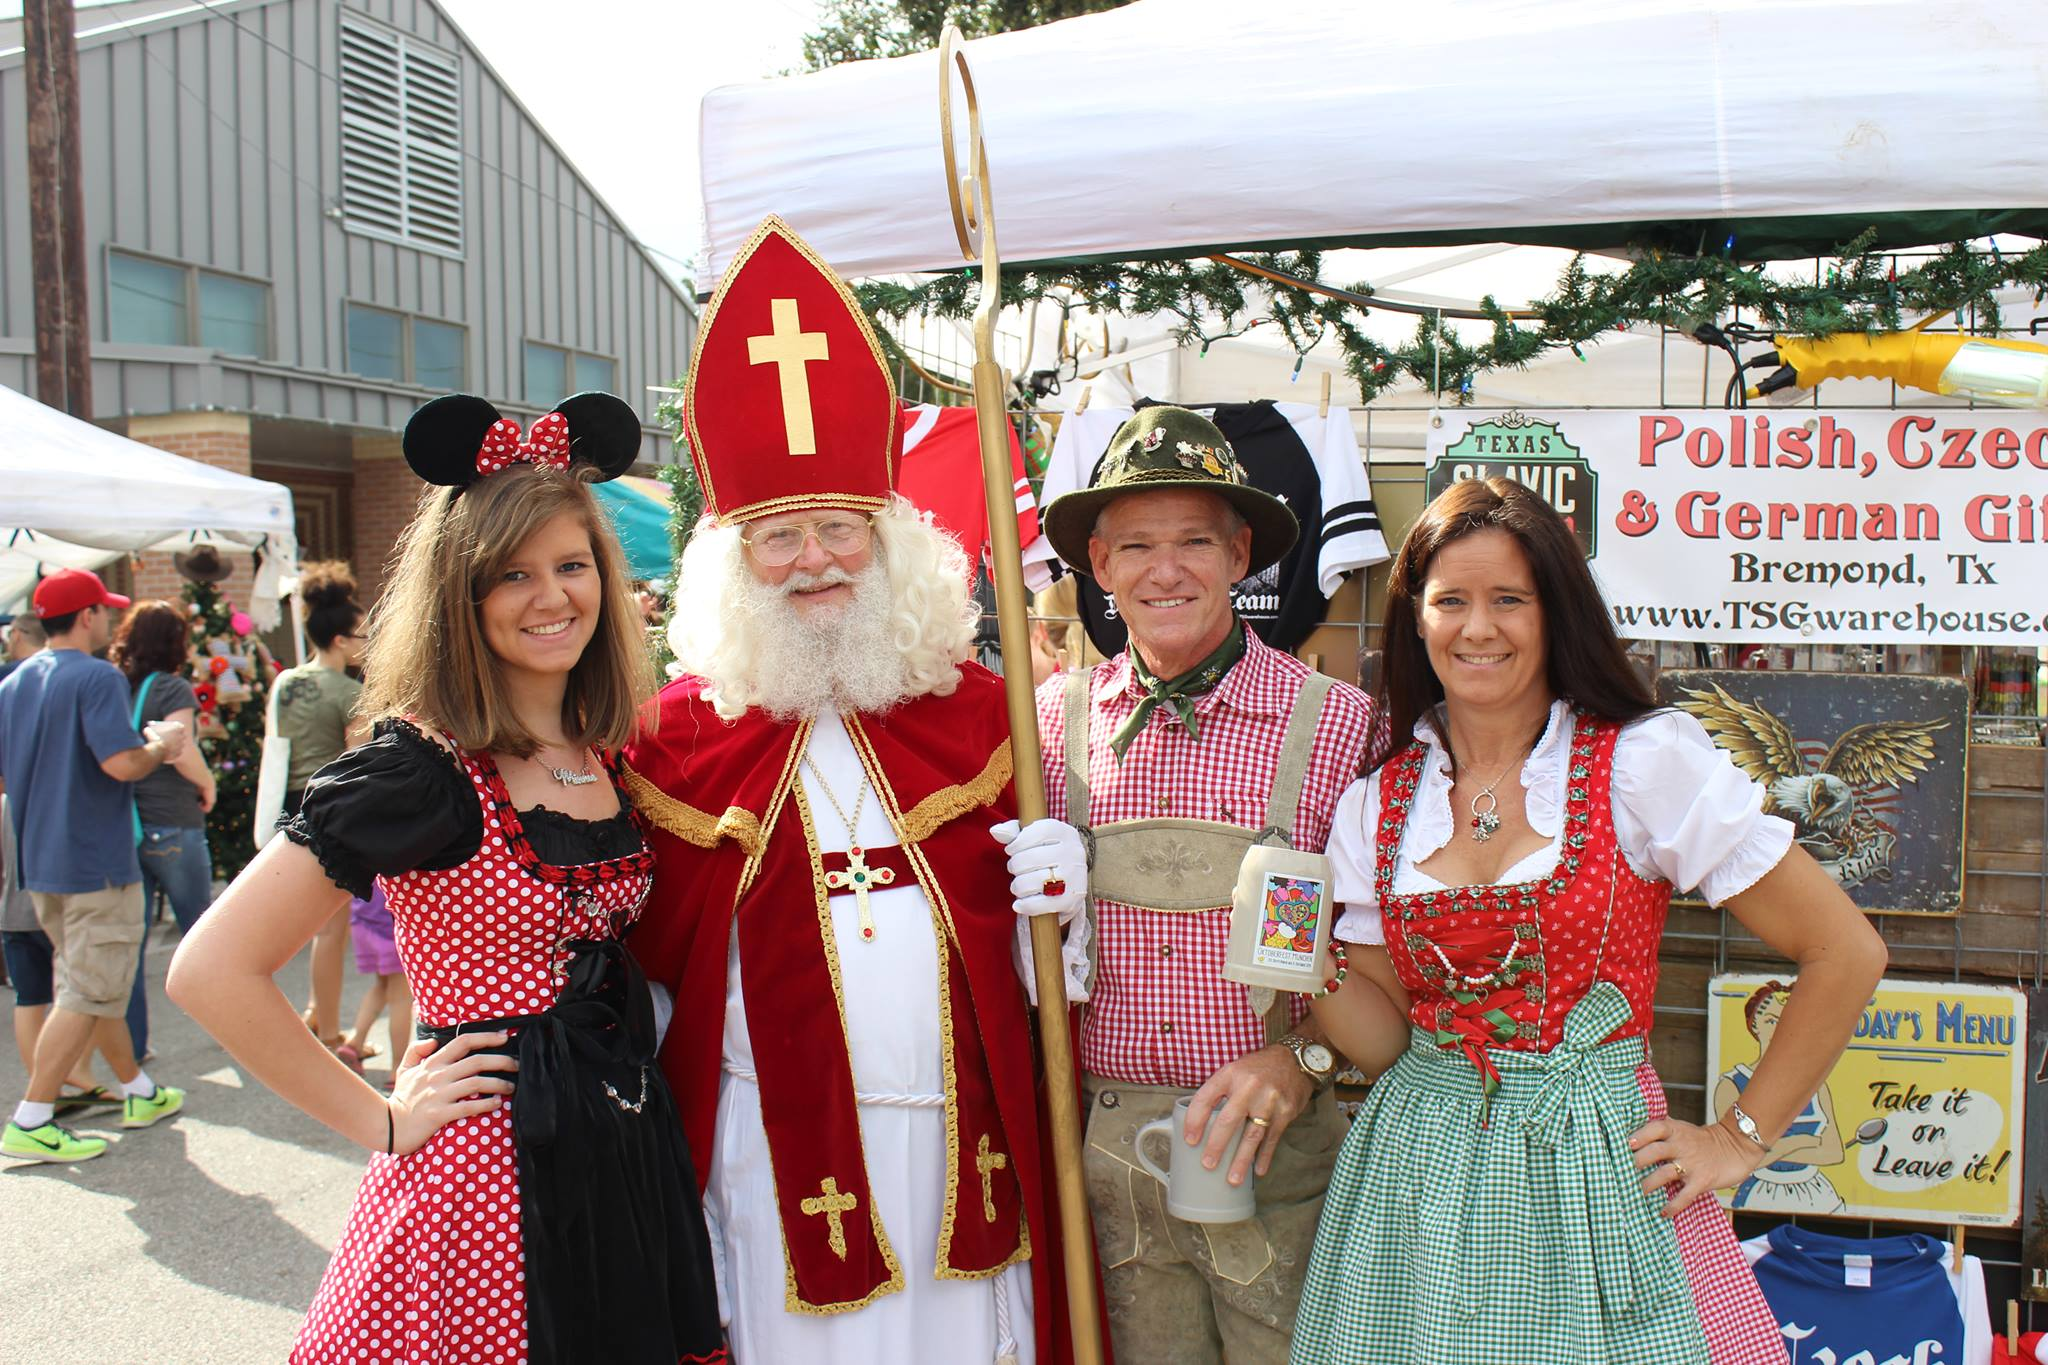 Polonia Restaurant At German Festival in Tomball Texas